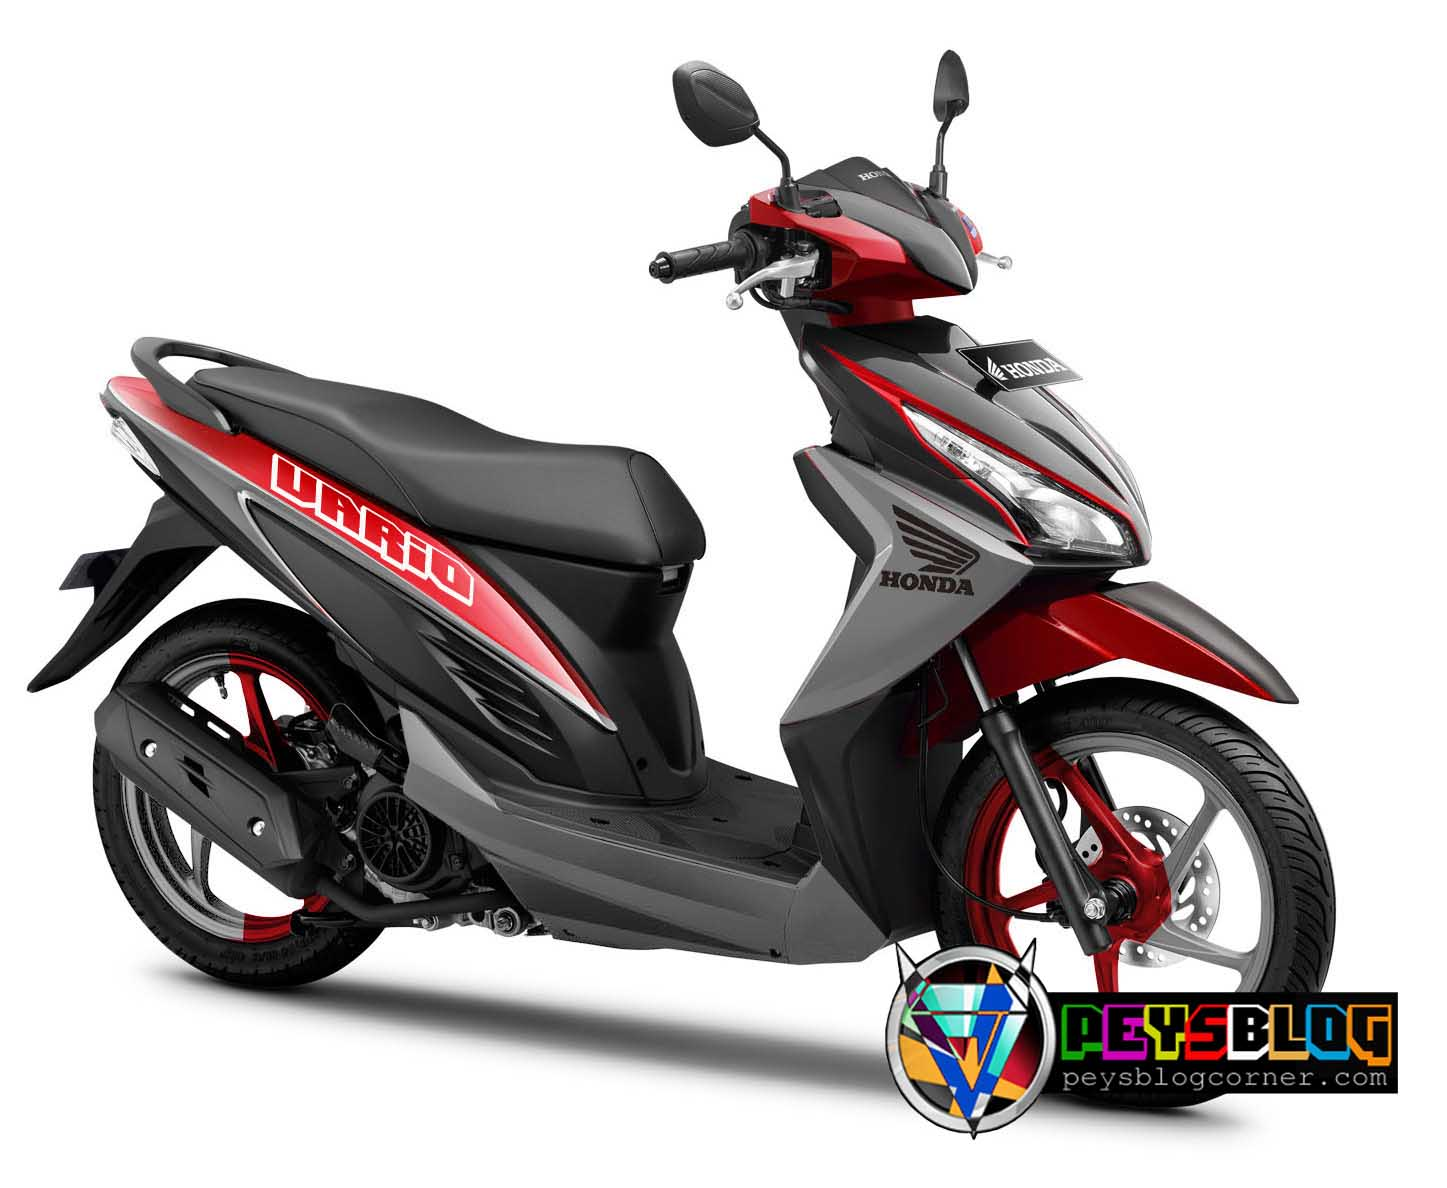 Koleksi Modifikasi Stang Motor Vario 110 Terlengkap Earth Modification